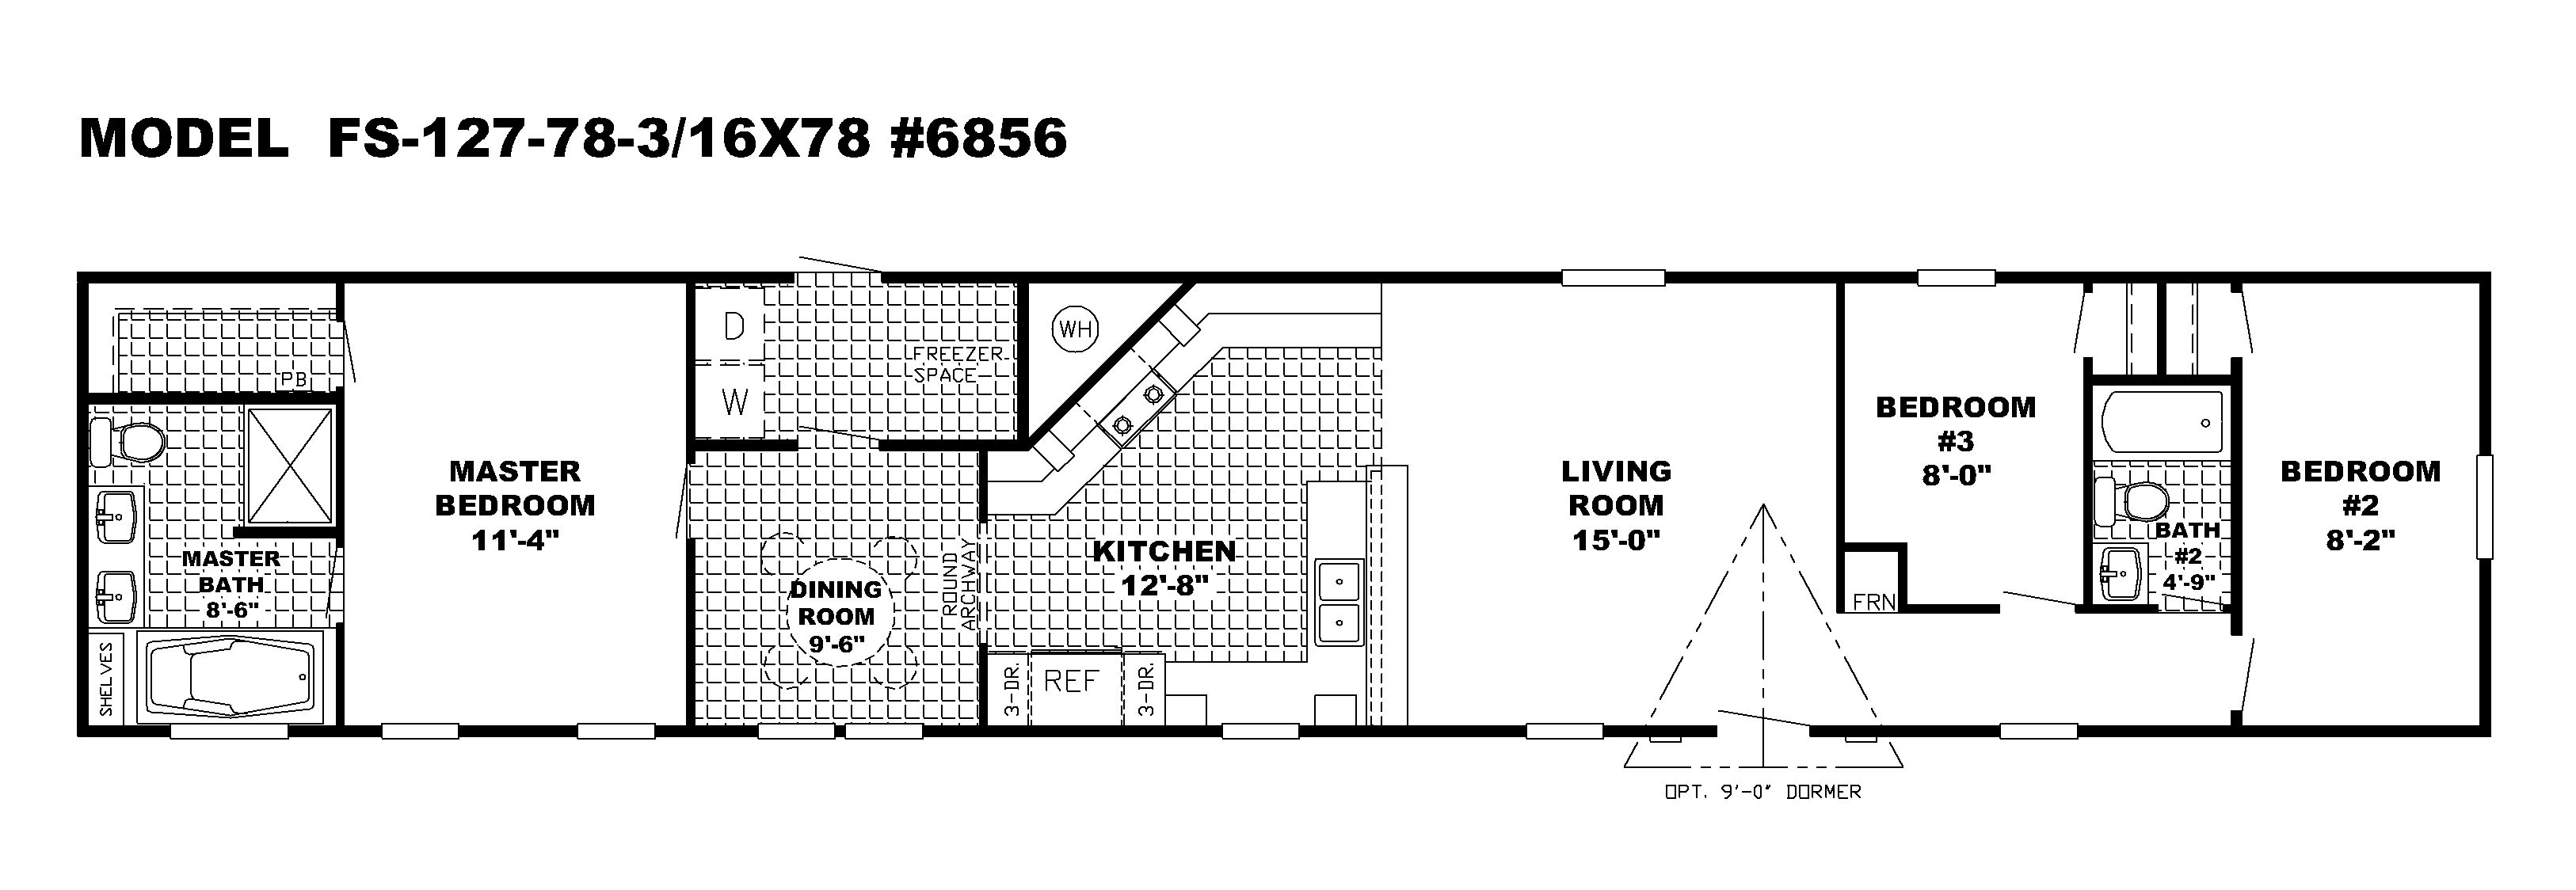 Floor Plans Mobile Homes Single Wide Mobile Home Floor Plans Single Wide Mobile Homes House Floor Plans